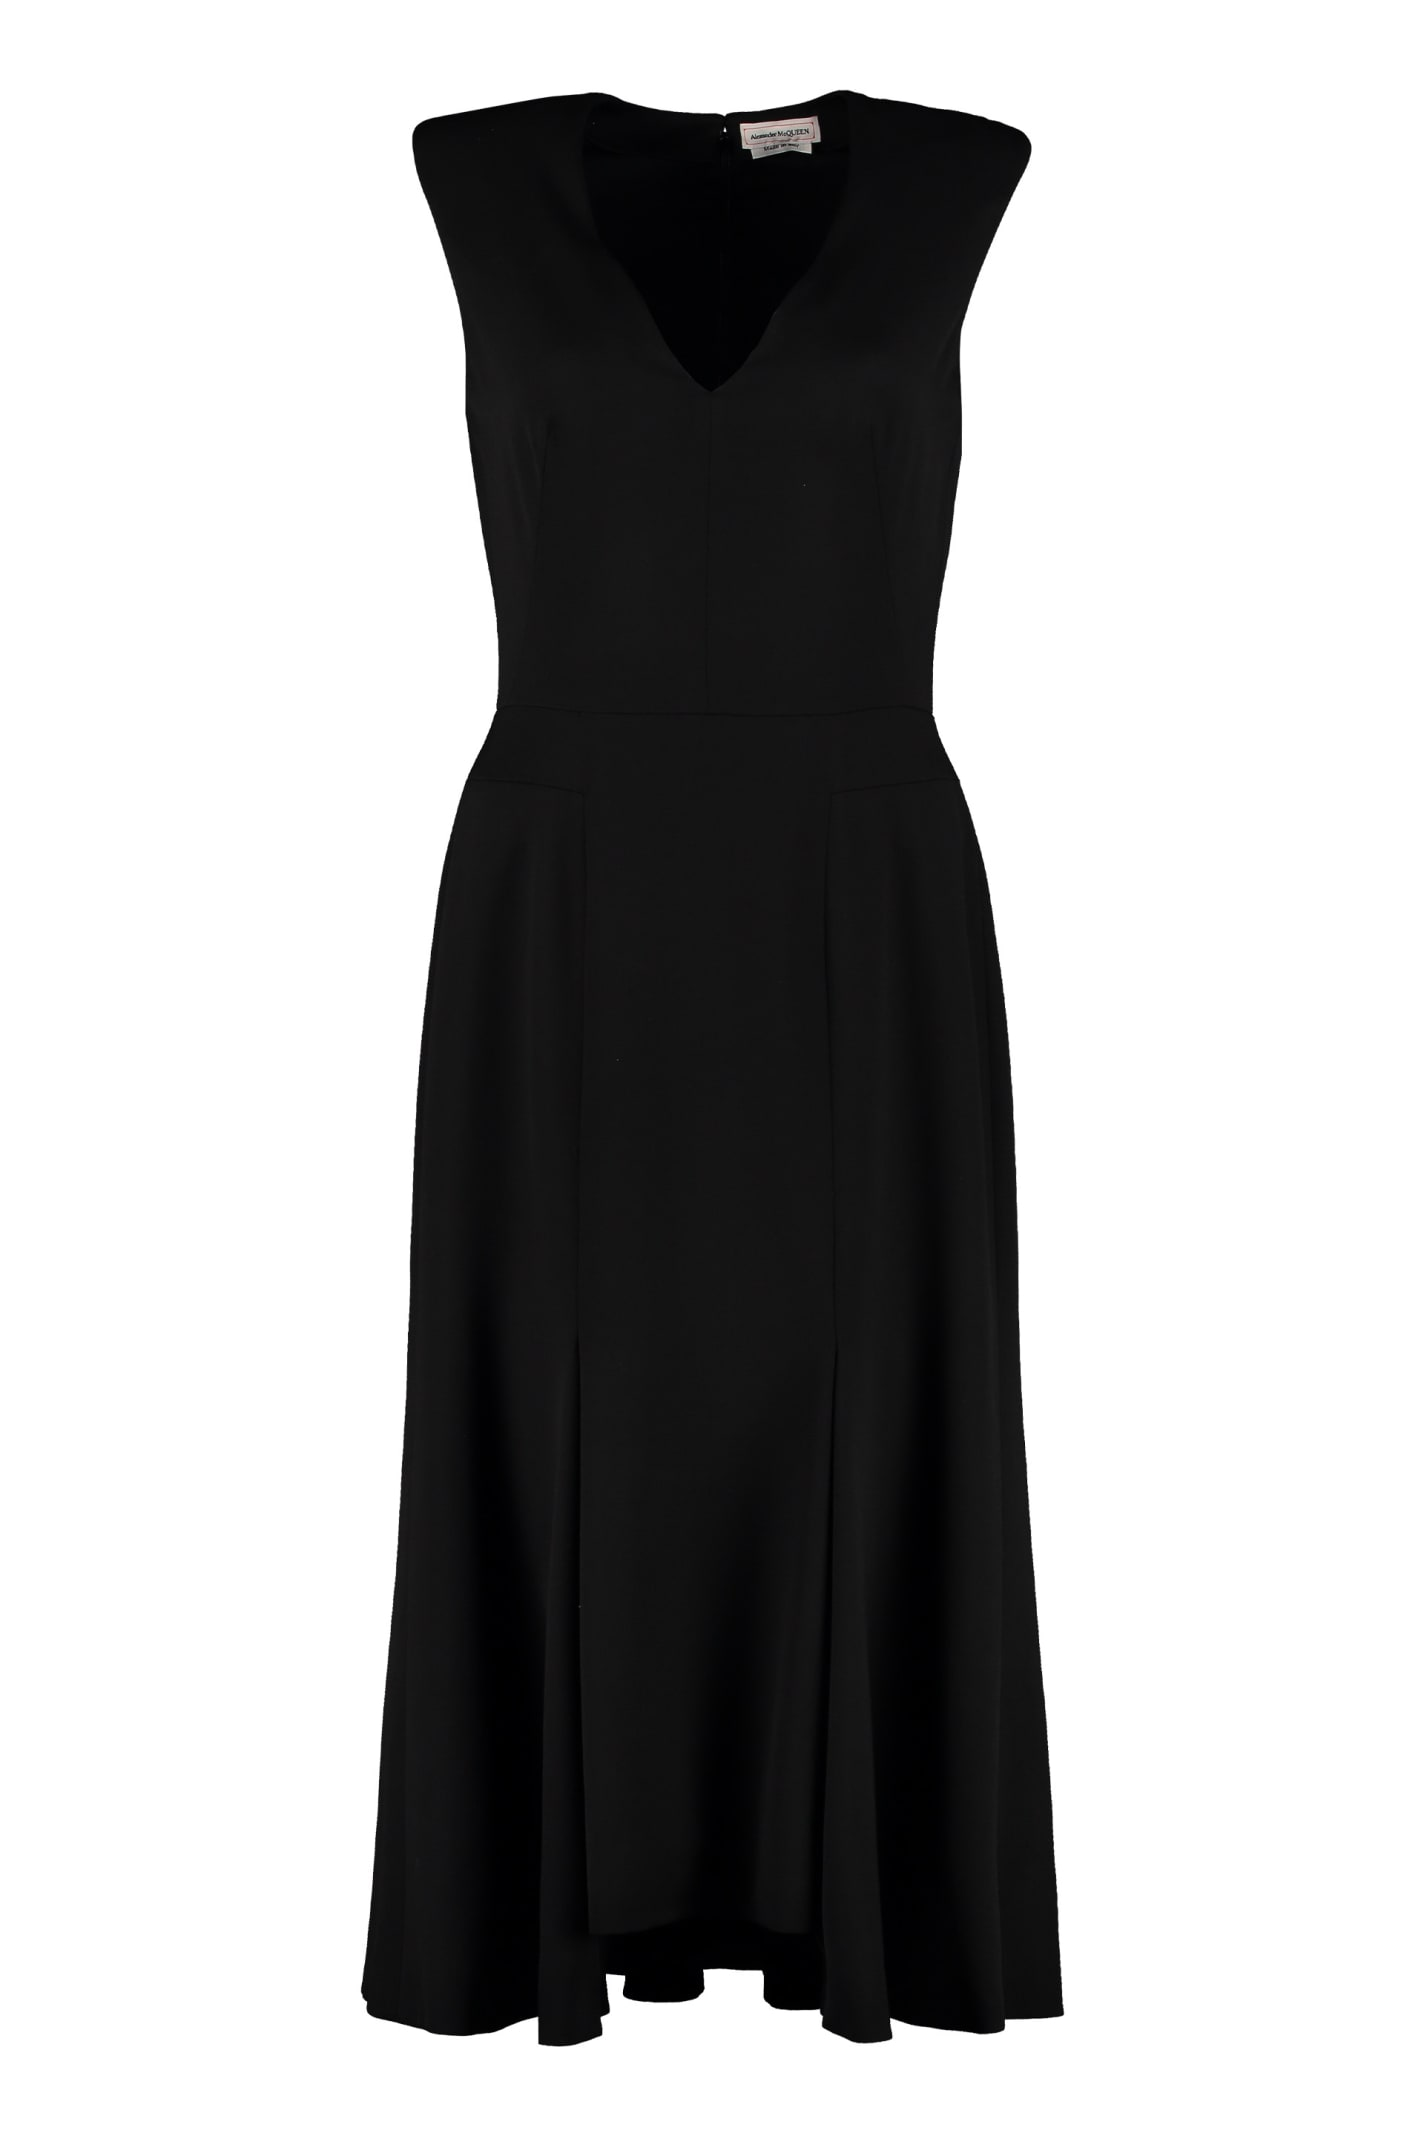 Alexander McQueen Virgin Wool Midi Dress